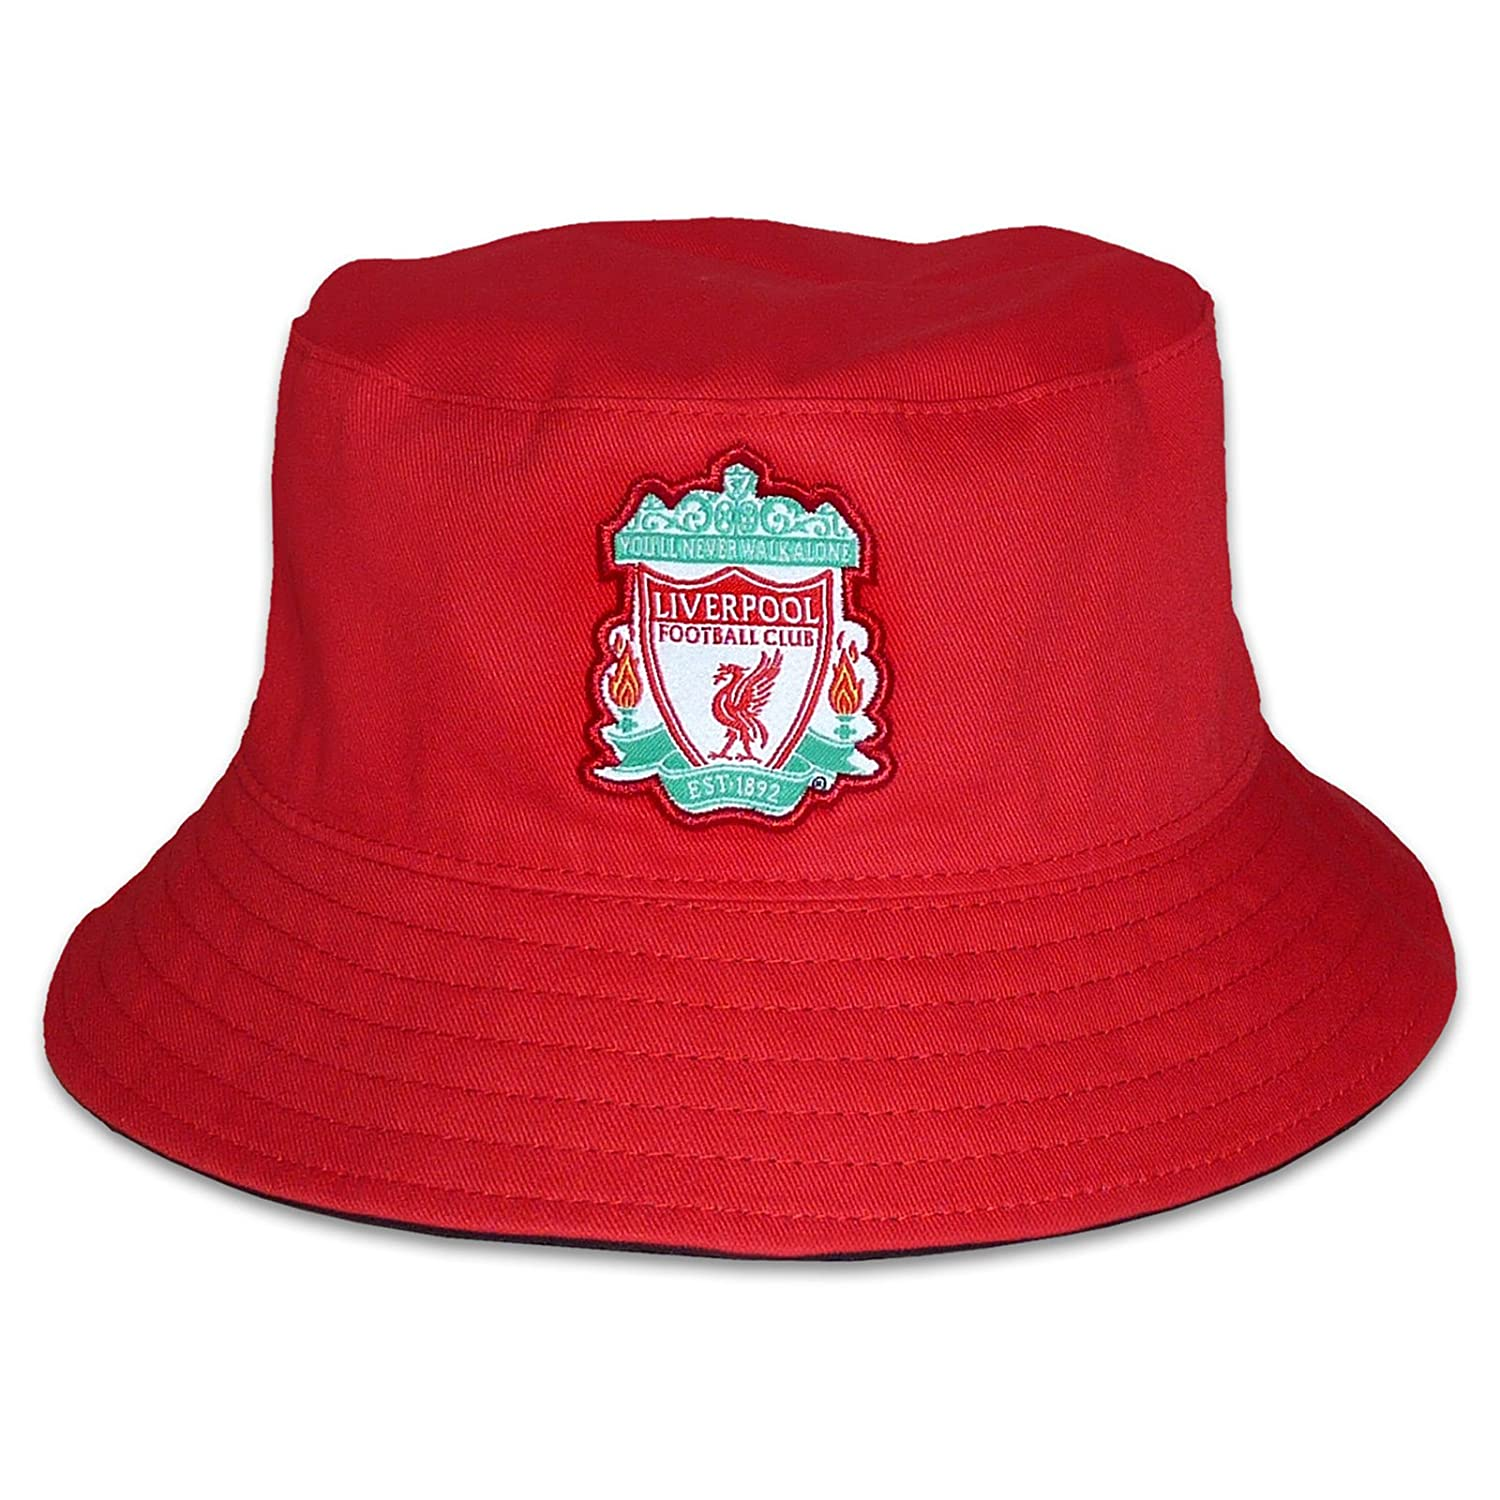 Liverpool FC Official Football Gift Reversible Bucket Hat Red Black  (RRP£14.99!)  Amazon.co.uk  Clothing d0c44e7d3f7